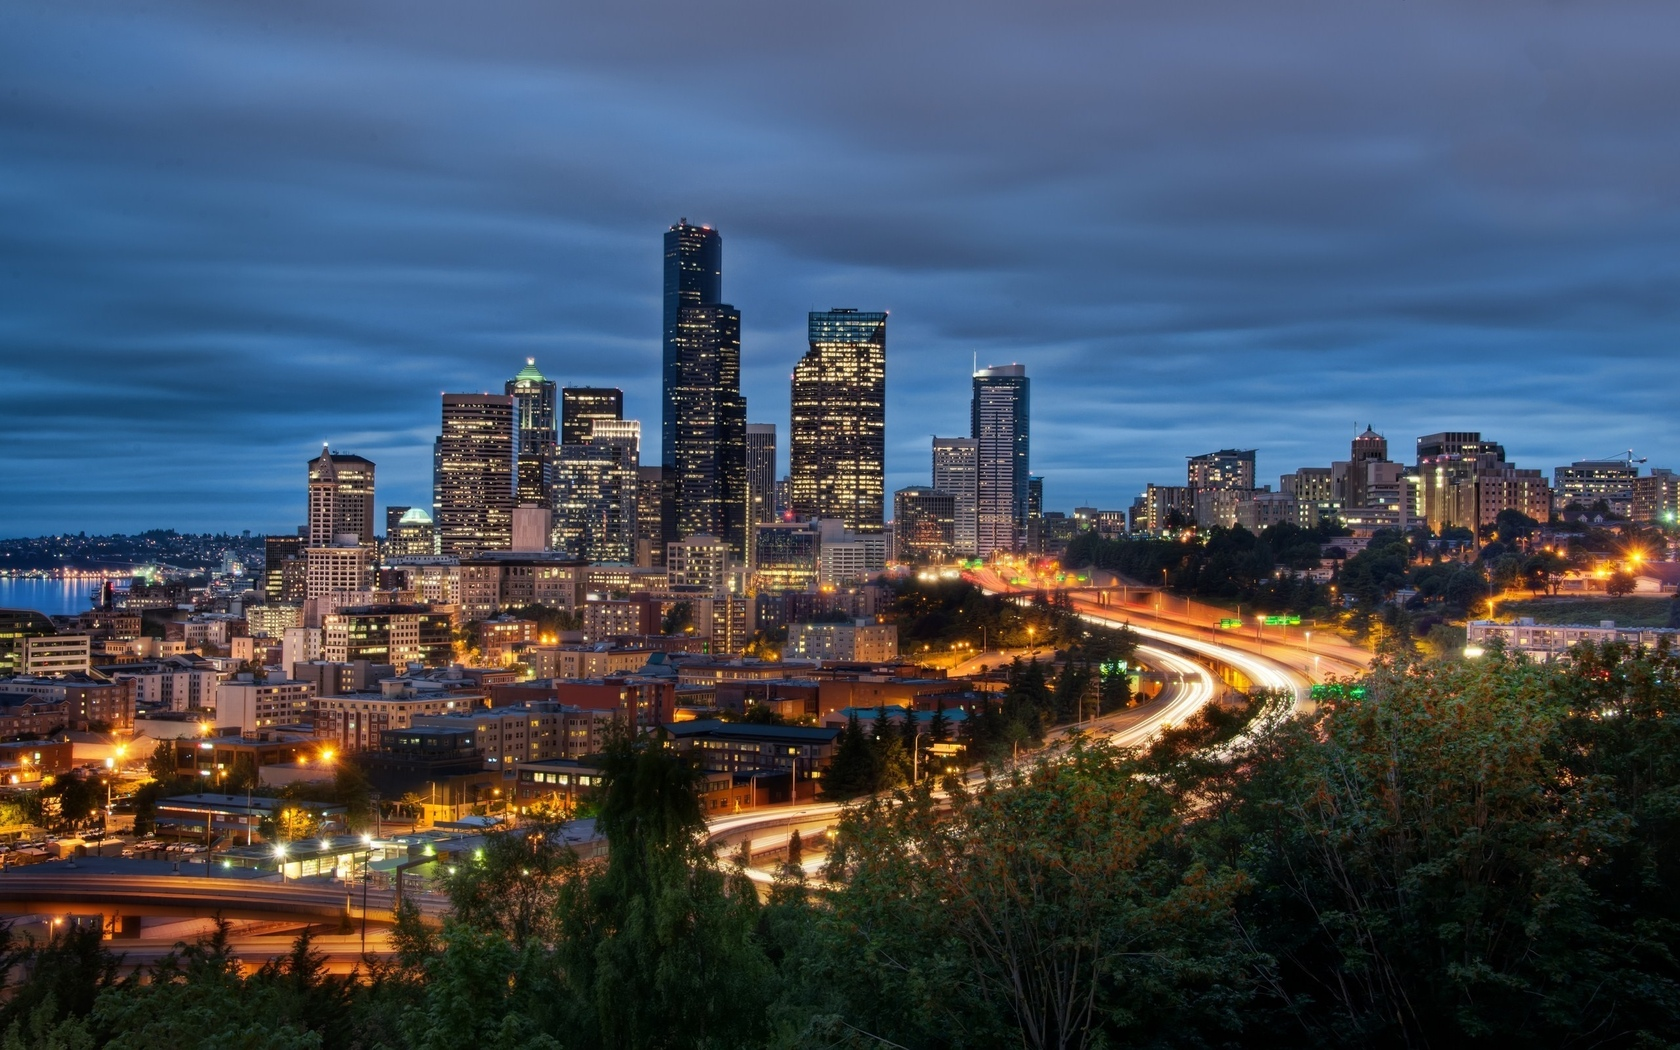 washington, сиэтл, вашингтон, night, downtown, огни, ночь, seattle